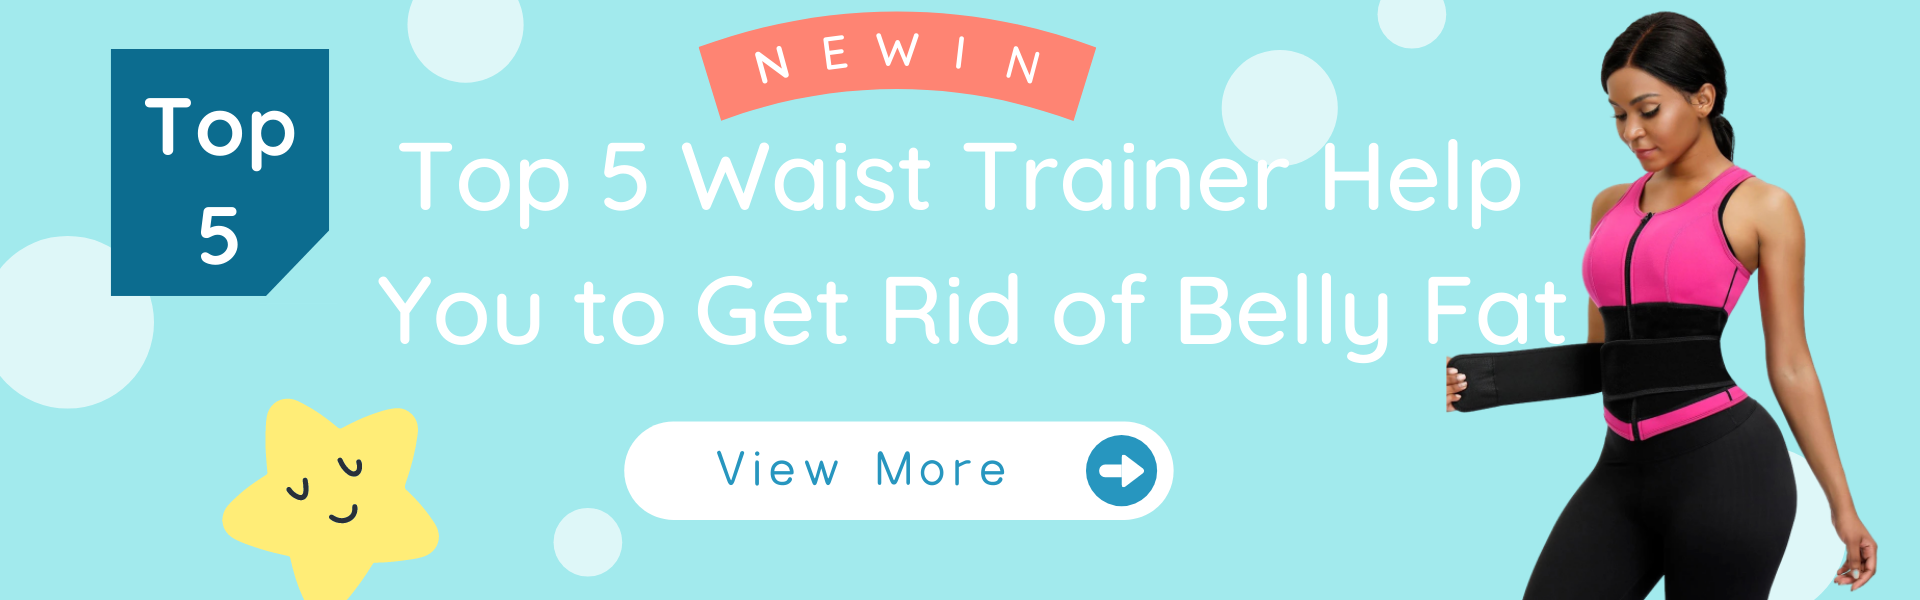 Top 5 Waist Trainer Help You to Get Rid of Belly Fat